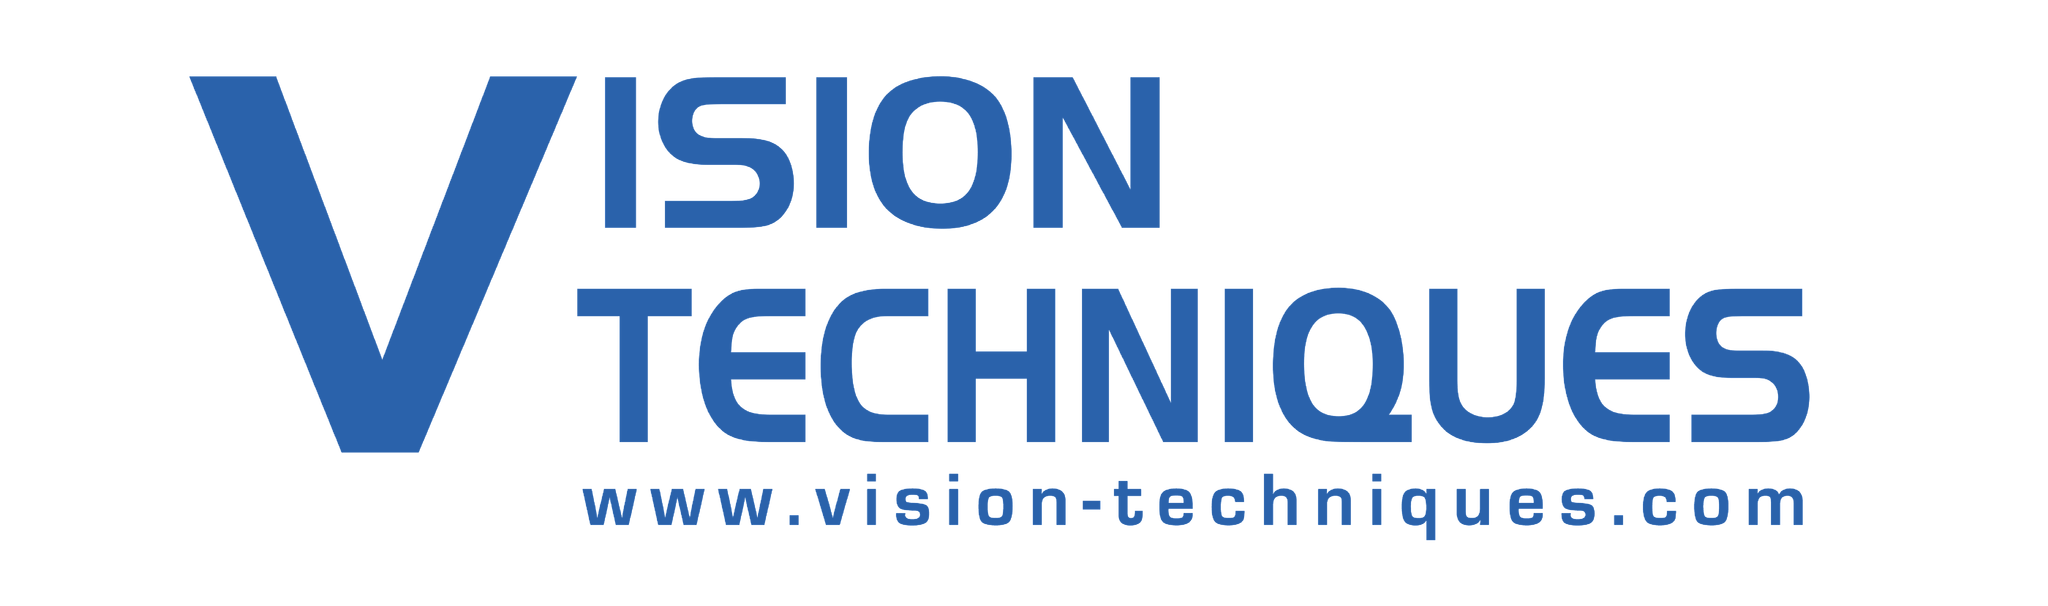 Vision Techniques Group plc